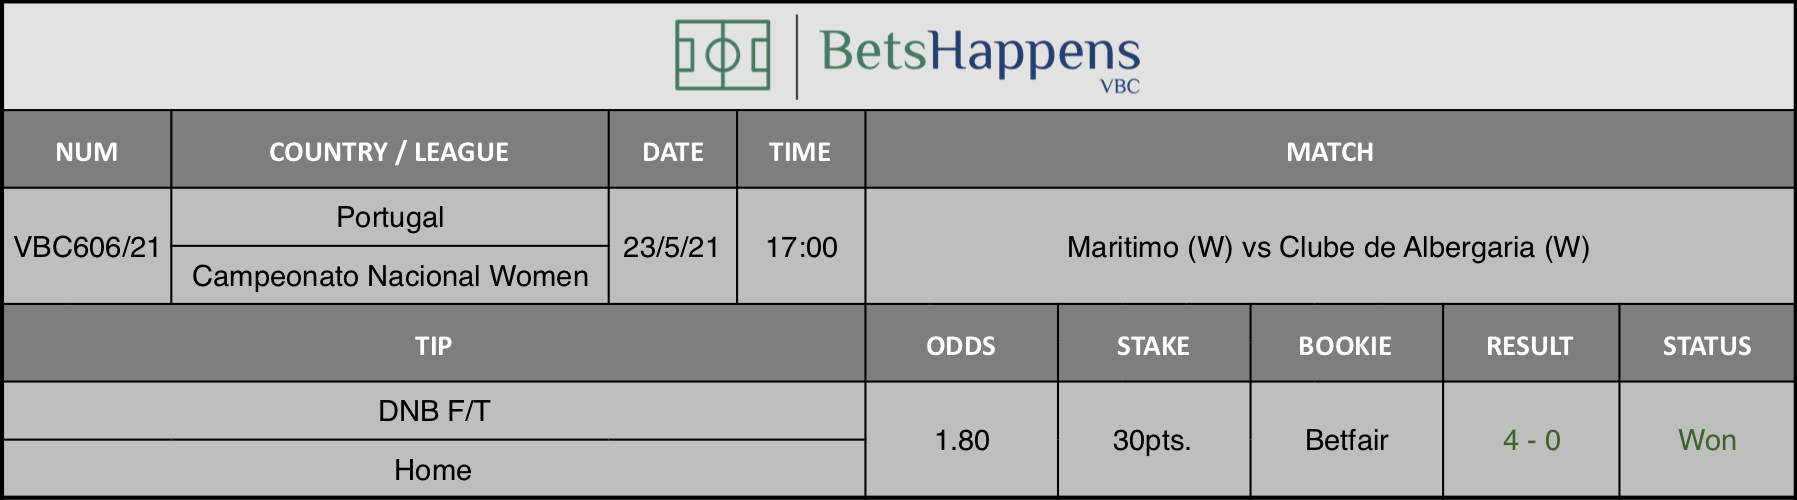 Results of our tip for the Maritimo (W) vs Clube de Albergaria (W) match where DNB F/T Home is recommended.